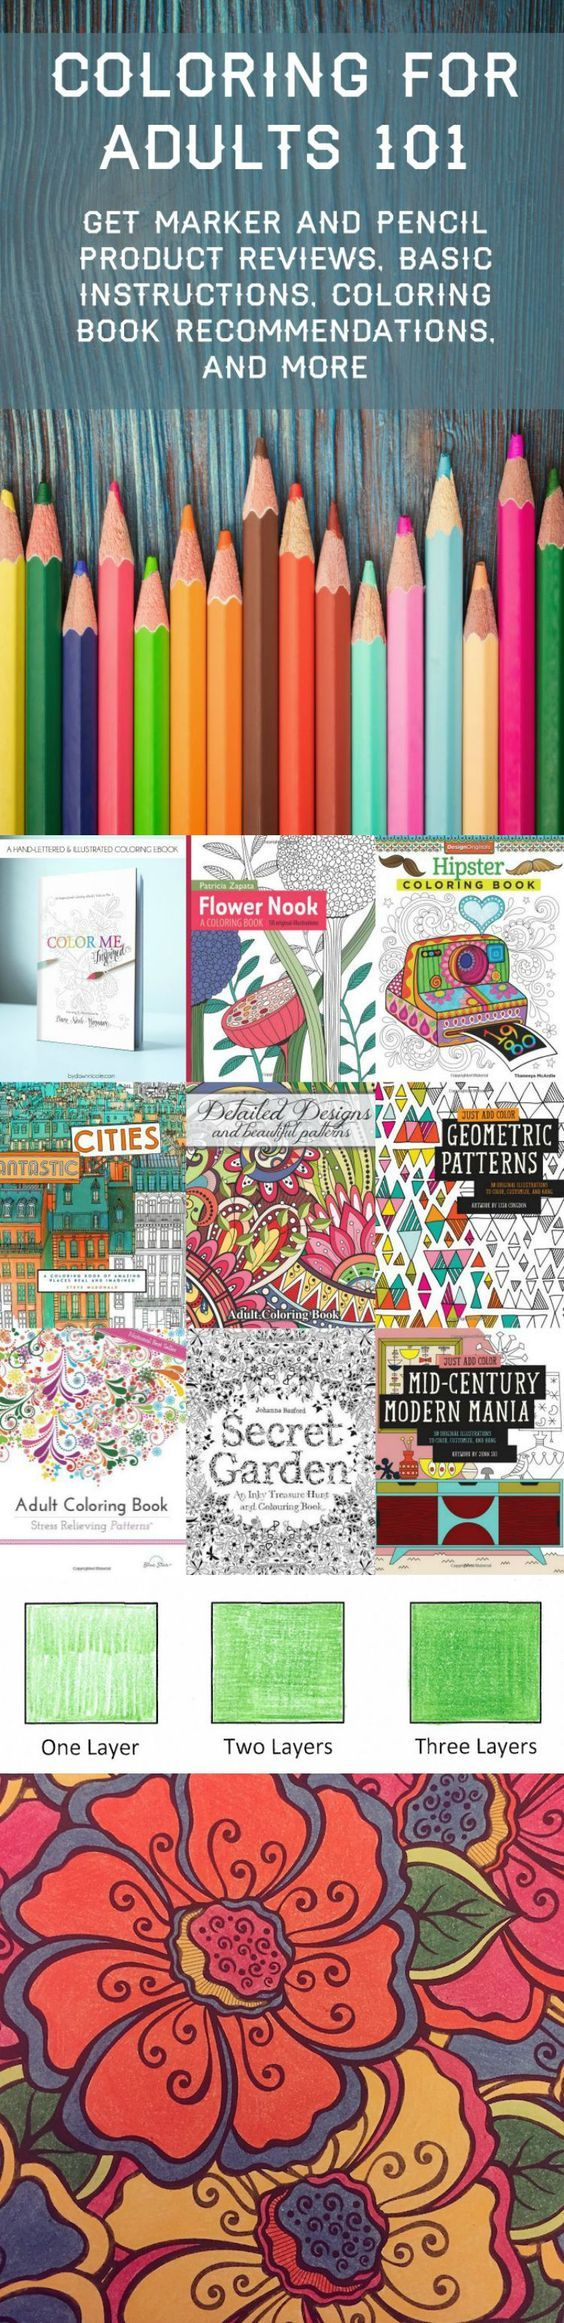 Grown up colouring books benefits - Coloring For Adults 101 Your Complete Guide